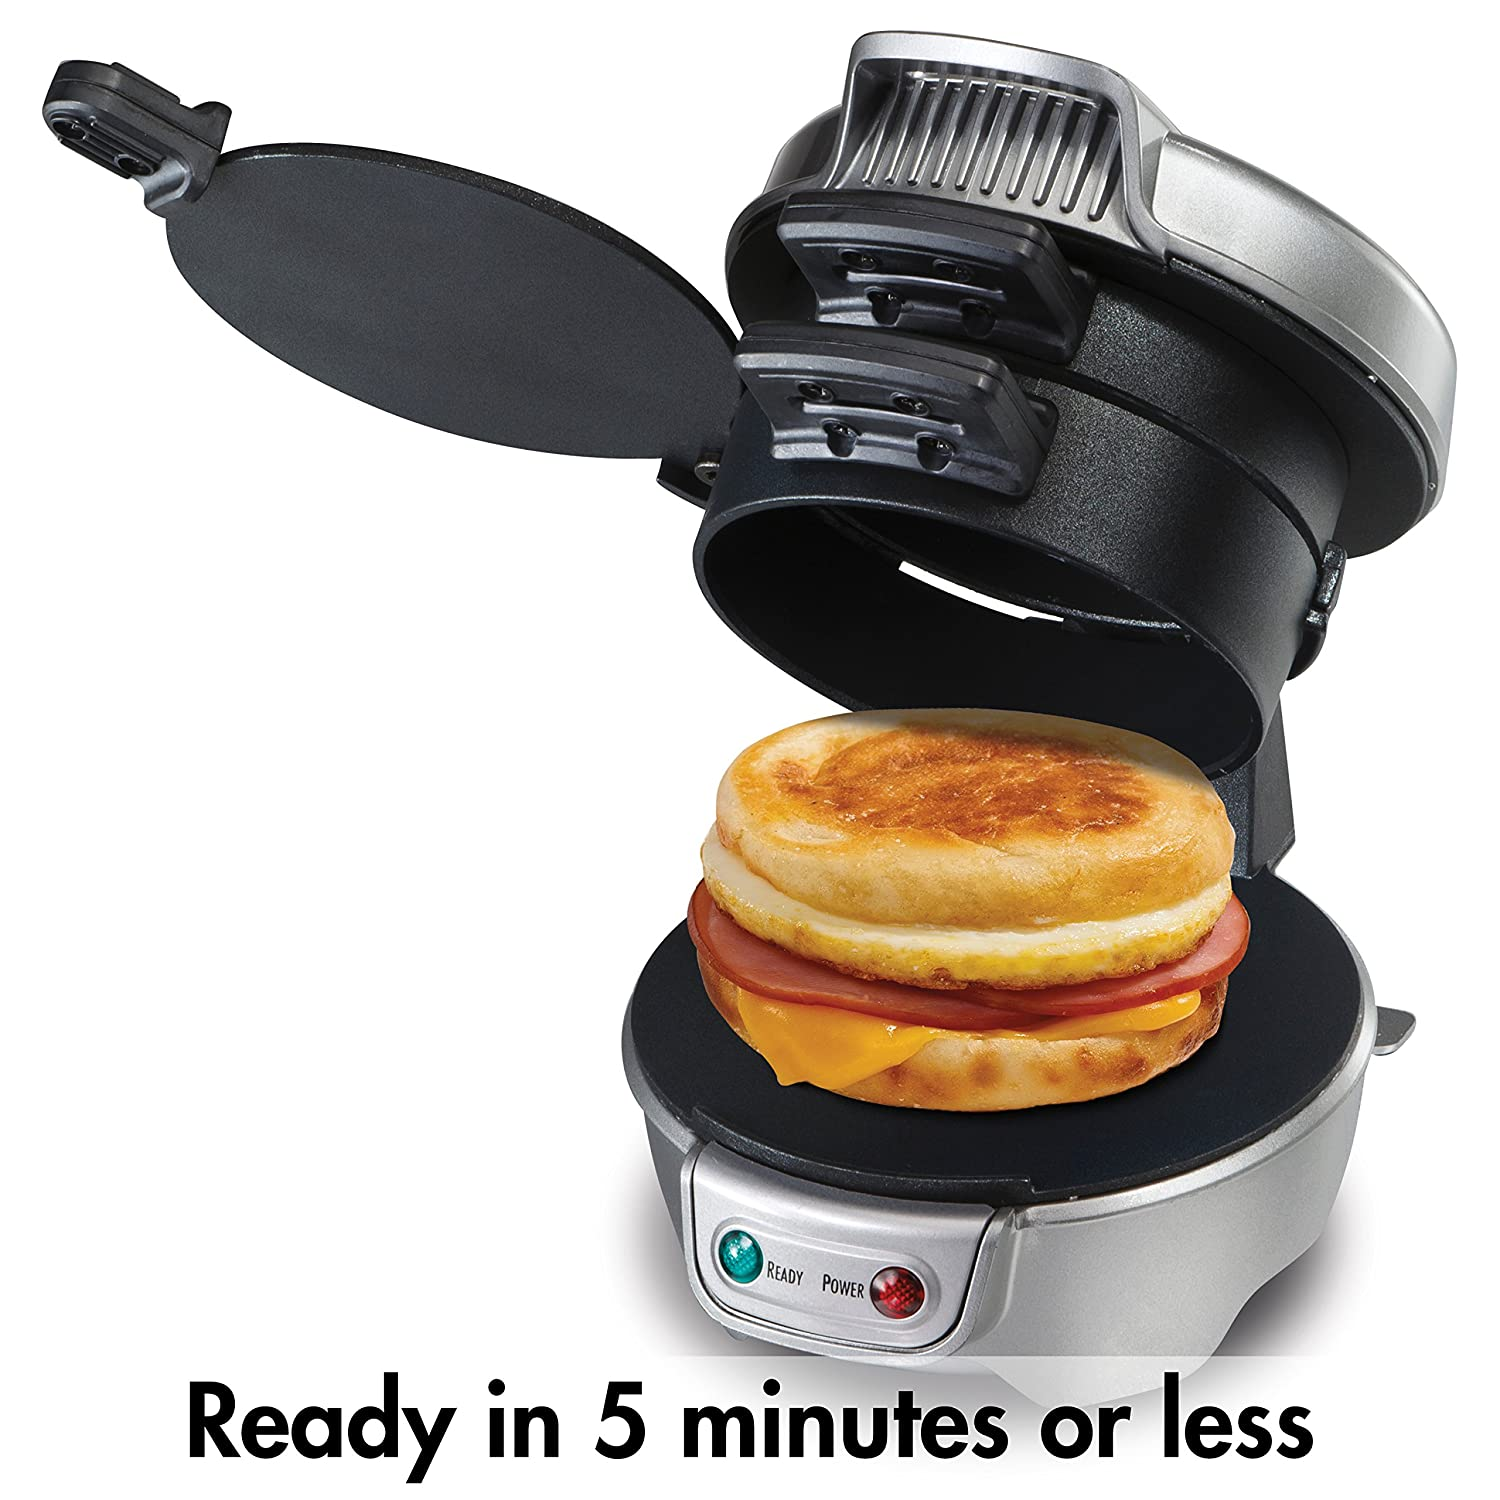 MAKE YOUR OWN BREAKFAST SANDWICH WITH #1 BEST SELLING SANDWICH MAKER!